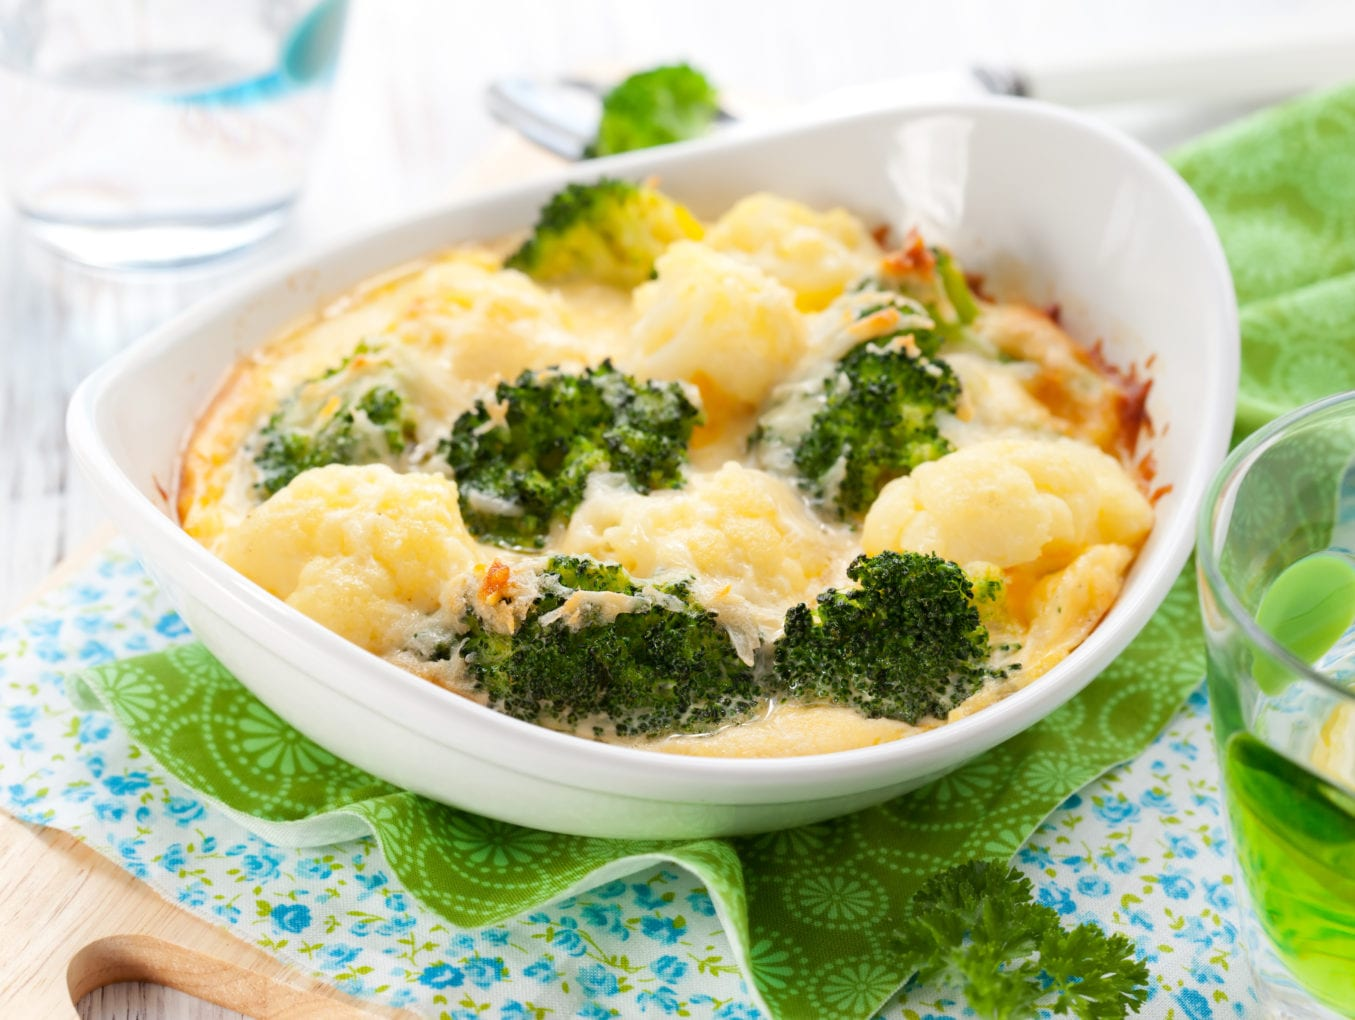 Crumb Topped Broccoli Cauliflower Bake